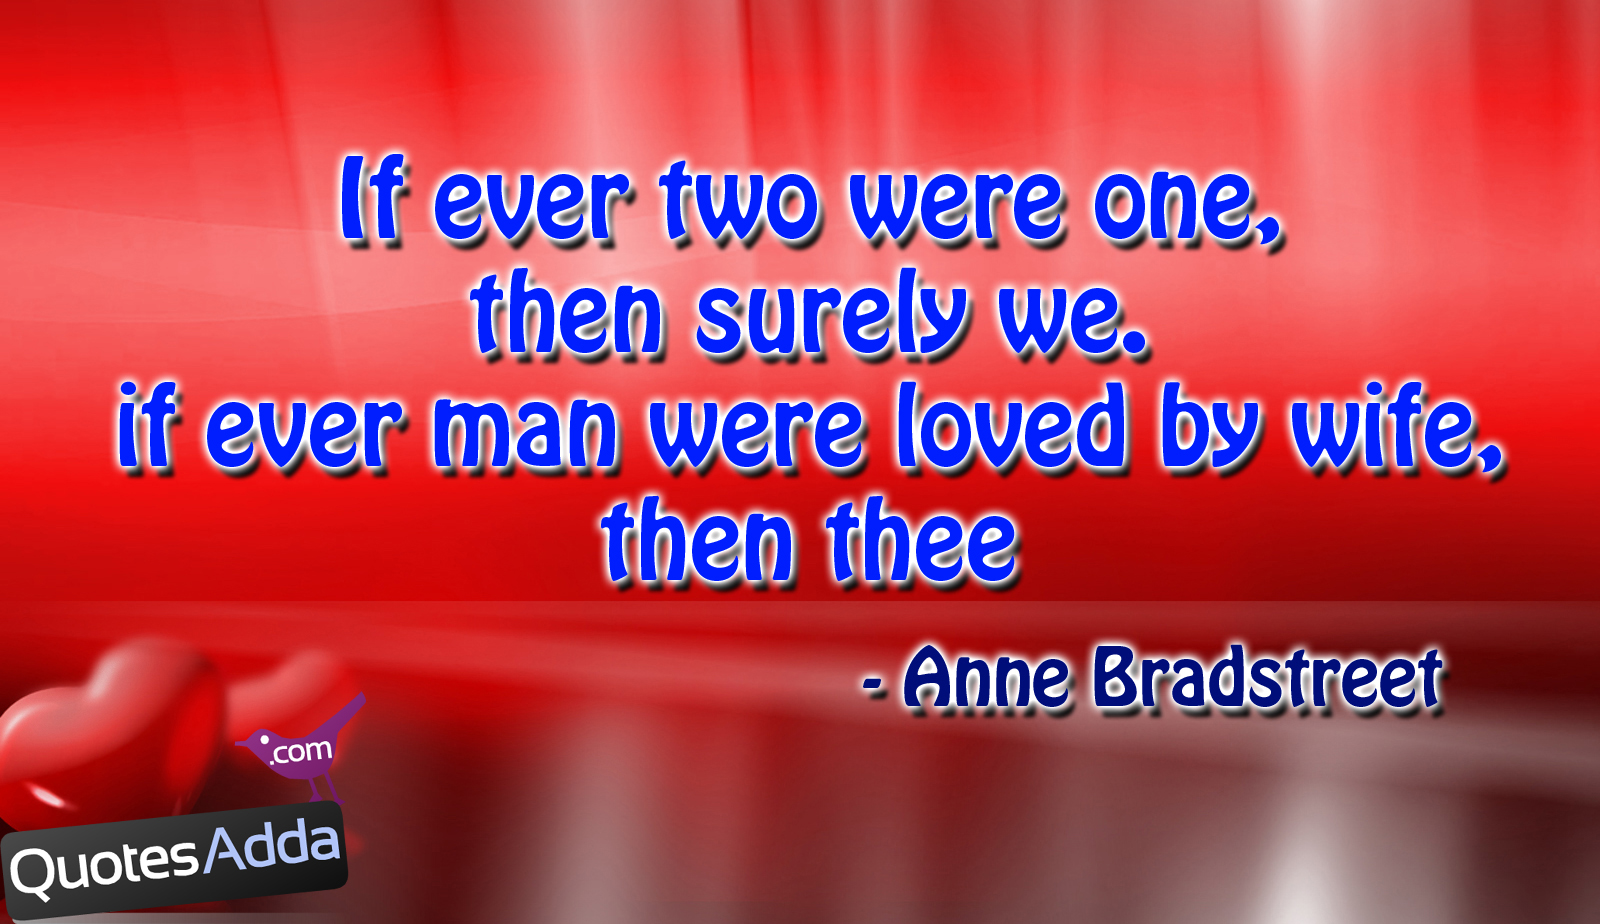 anne bradstreet quotes about love with images quotesadda